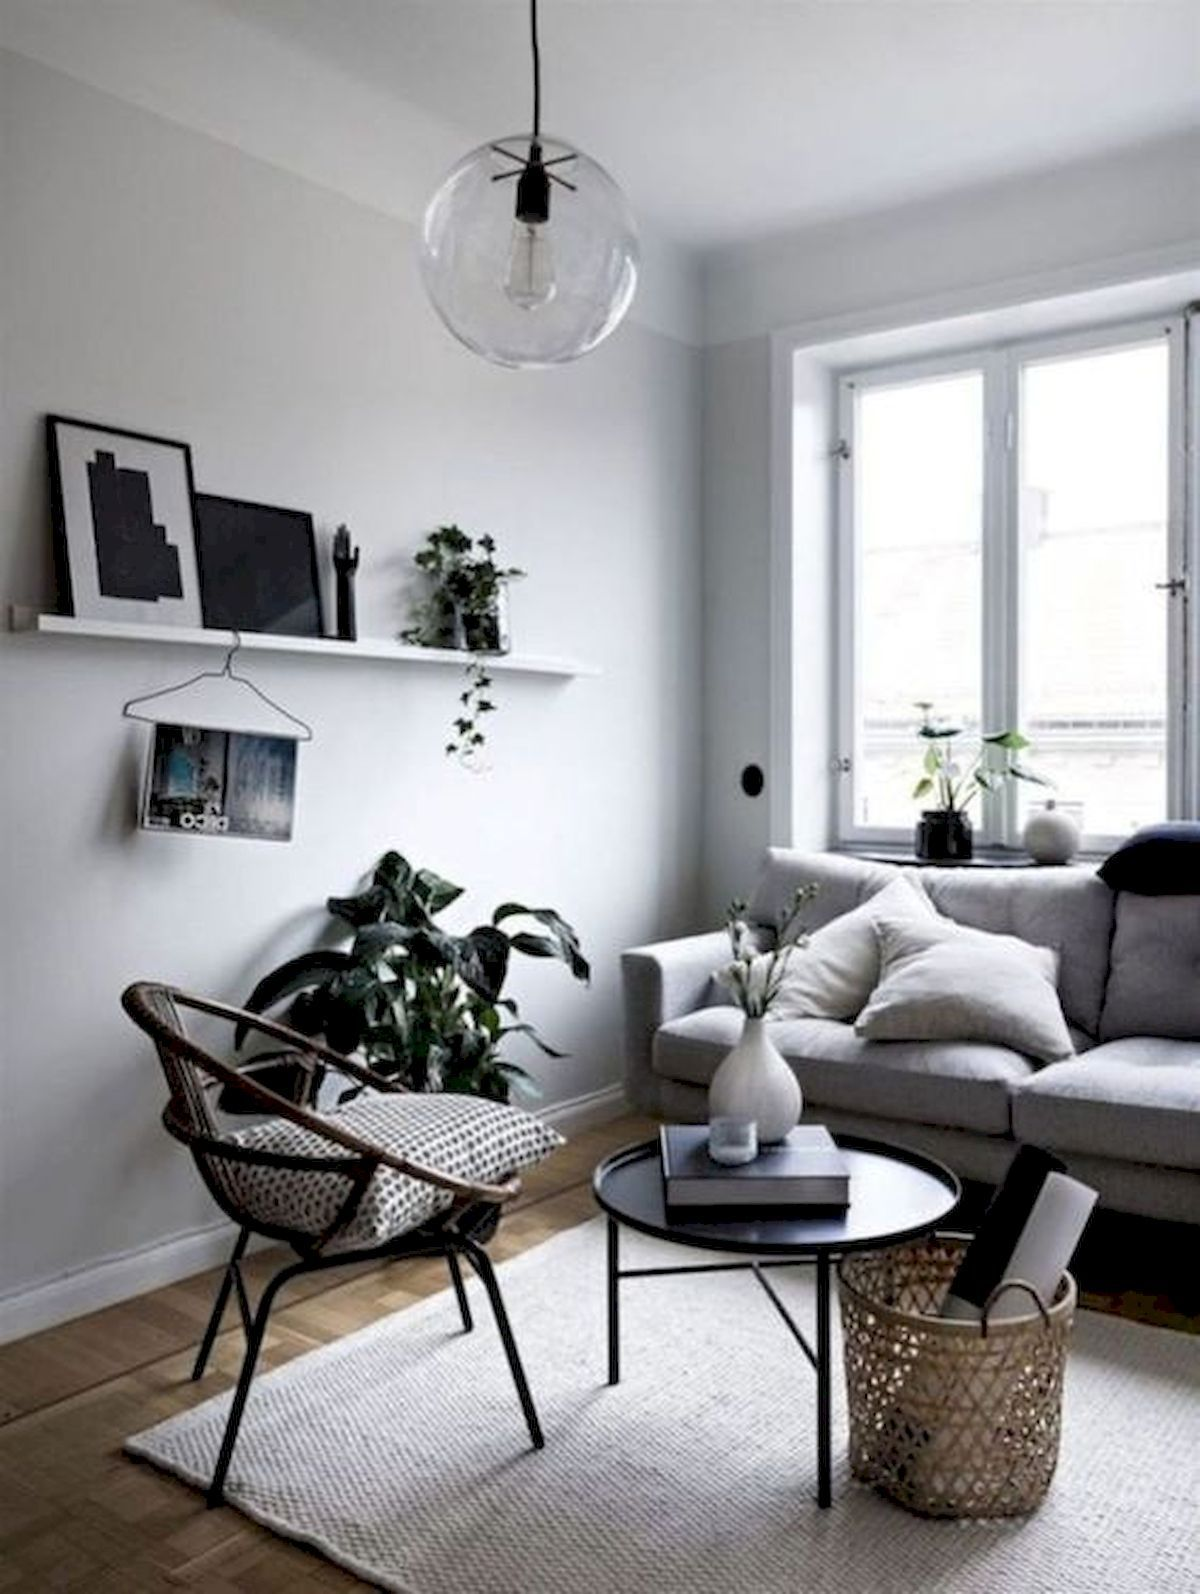 30 Awesome Small Apartment Design And Decor Ideas With Farmhouse Styles Modern Minimalist Living Room Minimalist Living Room Decor Small Living Room Decor